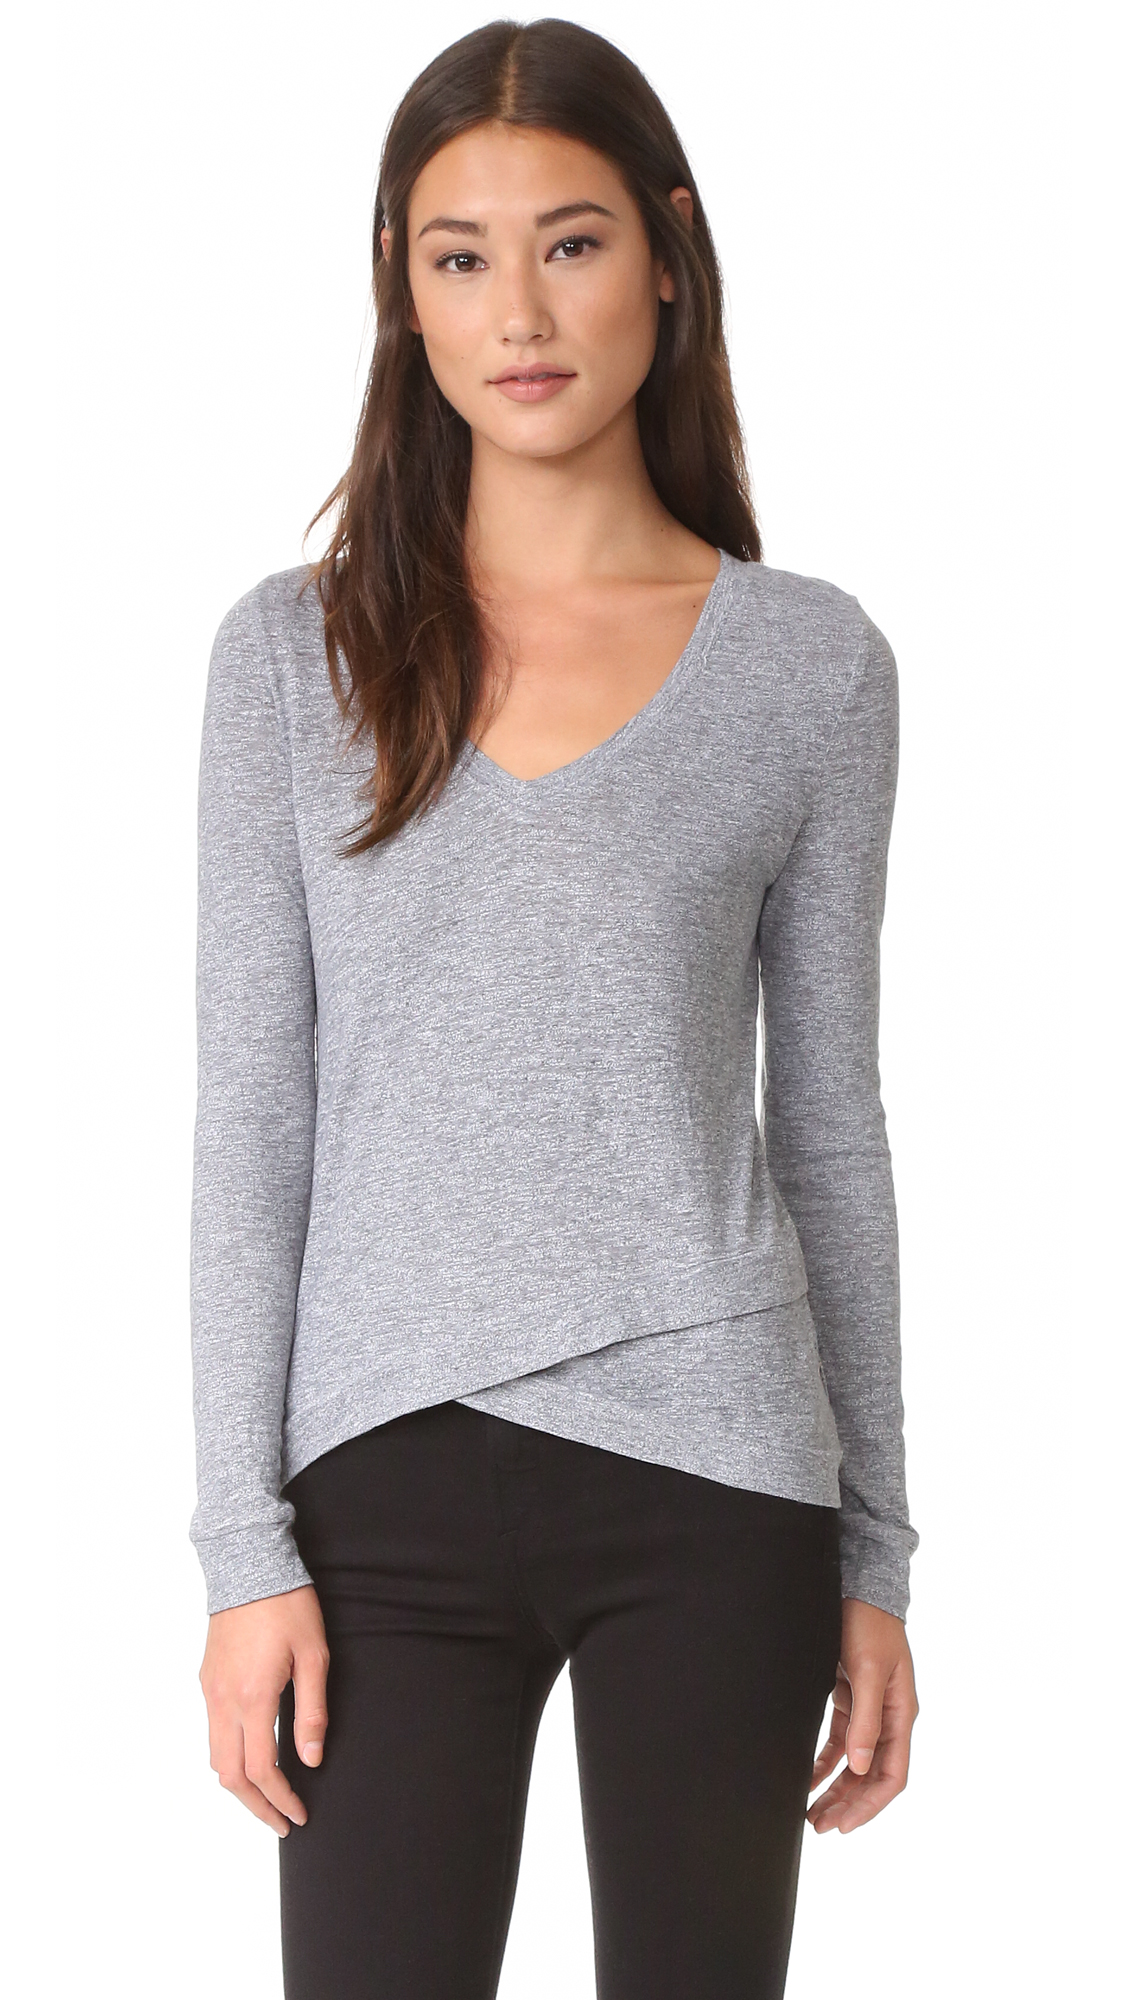 Lanston Asymmetrical Pullover - Heather at Shopbop